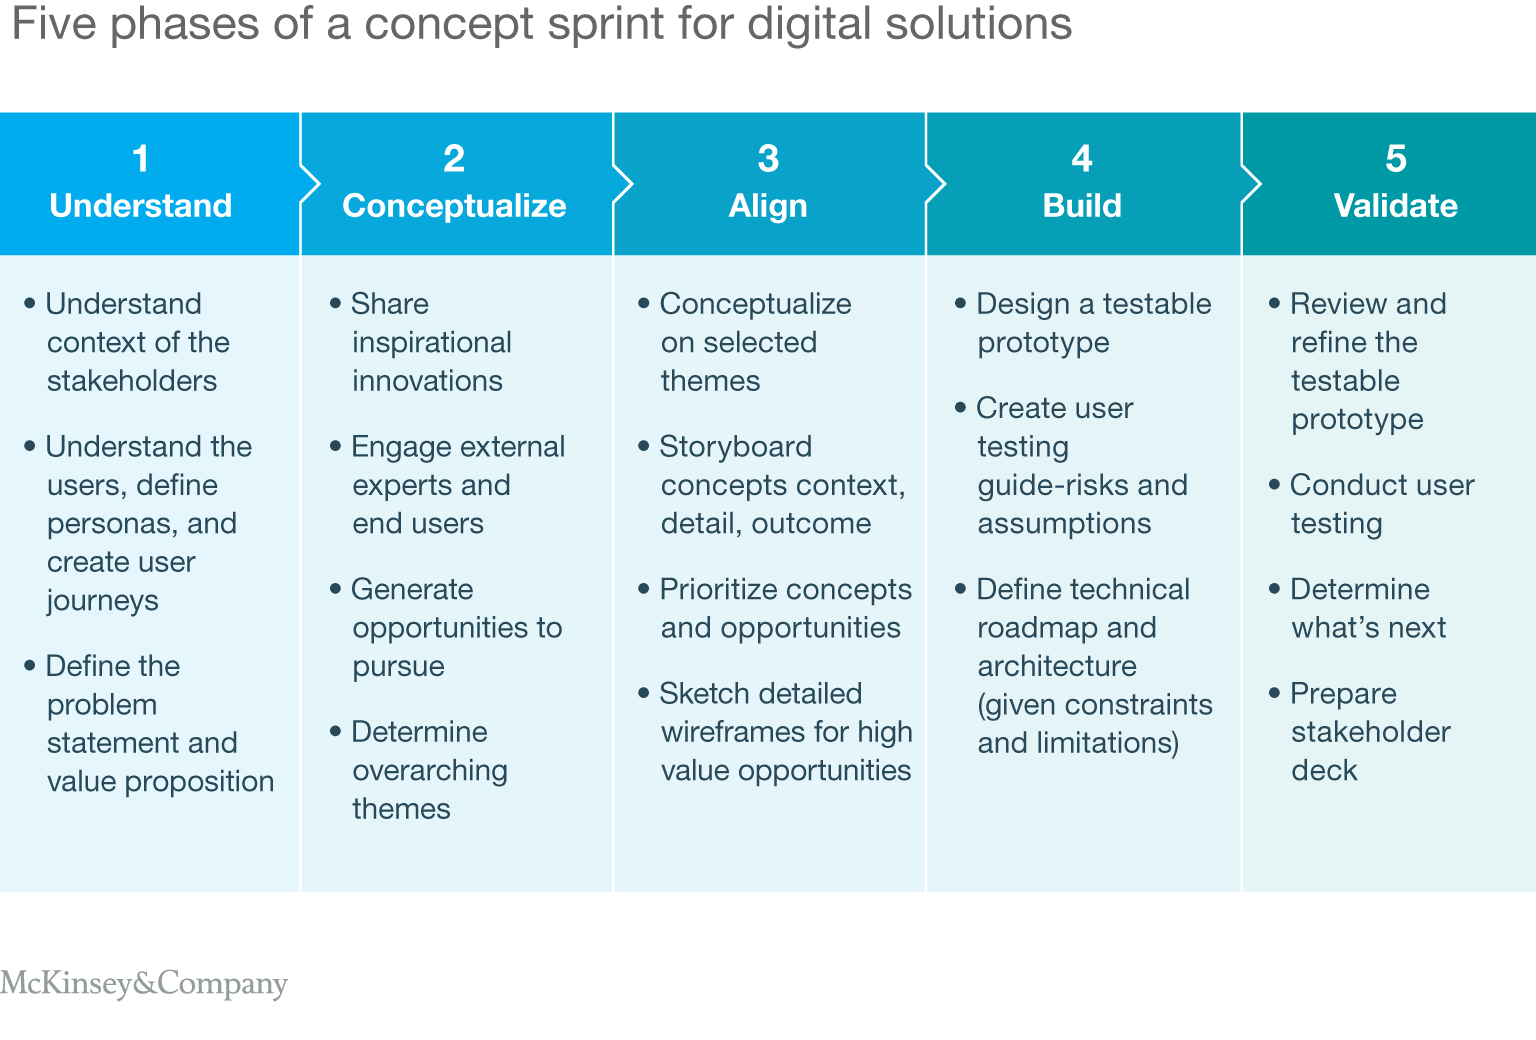 Five phases of a concept sprint for digital solutions